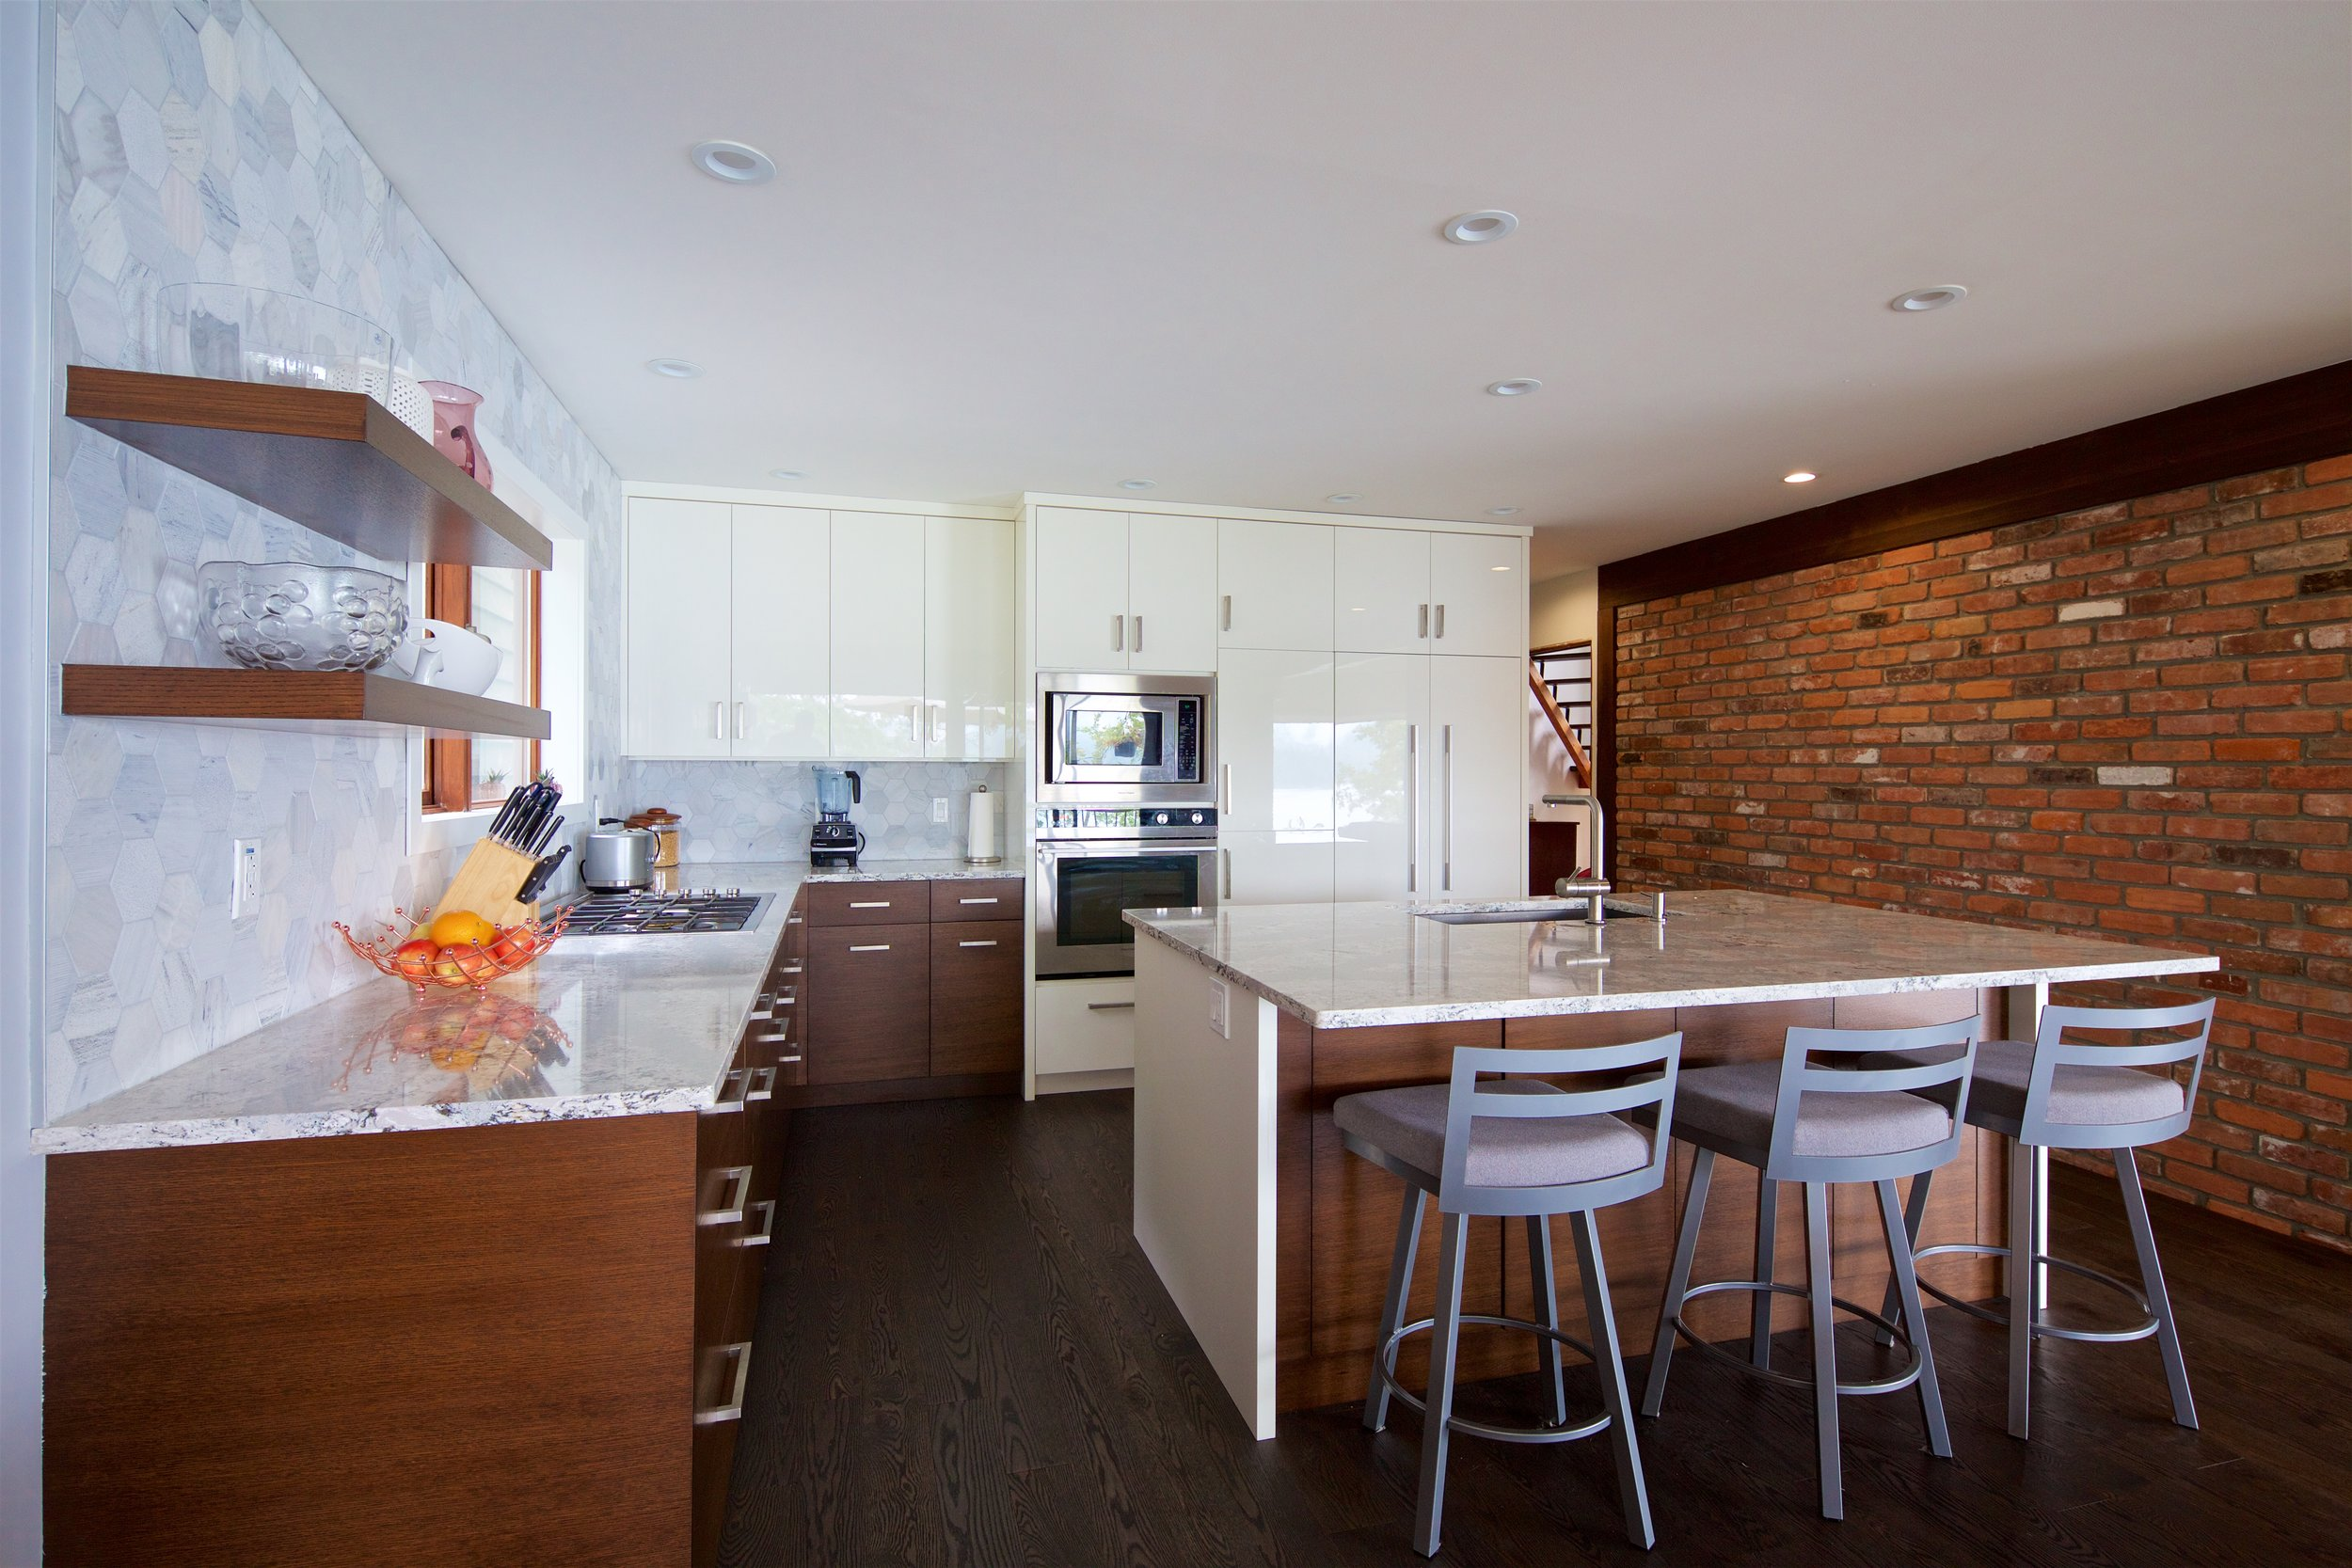 J. Pellerin - (Client)Project Date: November 2016, Project Price: $10,000 - $49,999My husband and I are very pleased with our new kitchen that was designed and installed by Cowichan Woodwork. The owner, Gordon, runs a professional, client-centred company. We ran into a couple of glitches and the company was flexible and accommodating. Pamela was a pleasure to work with and her expertise enabled us to create our dream kitchen. I checked out two other companies but Pamela really understood what we wanted. Issac installed the cabinetry and was detail-oriented and a true craftsman. My husband dealt with Aaron who was also great. Thank you to all of you at Cowichan Woodwork who worked on our kitchen renovation!